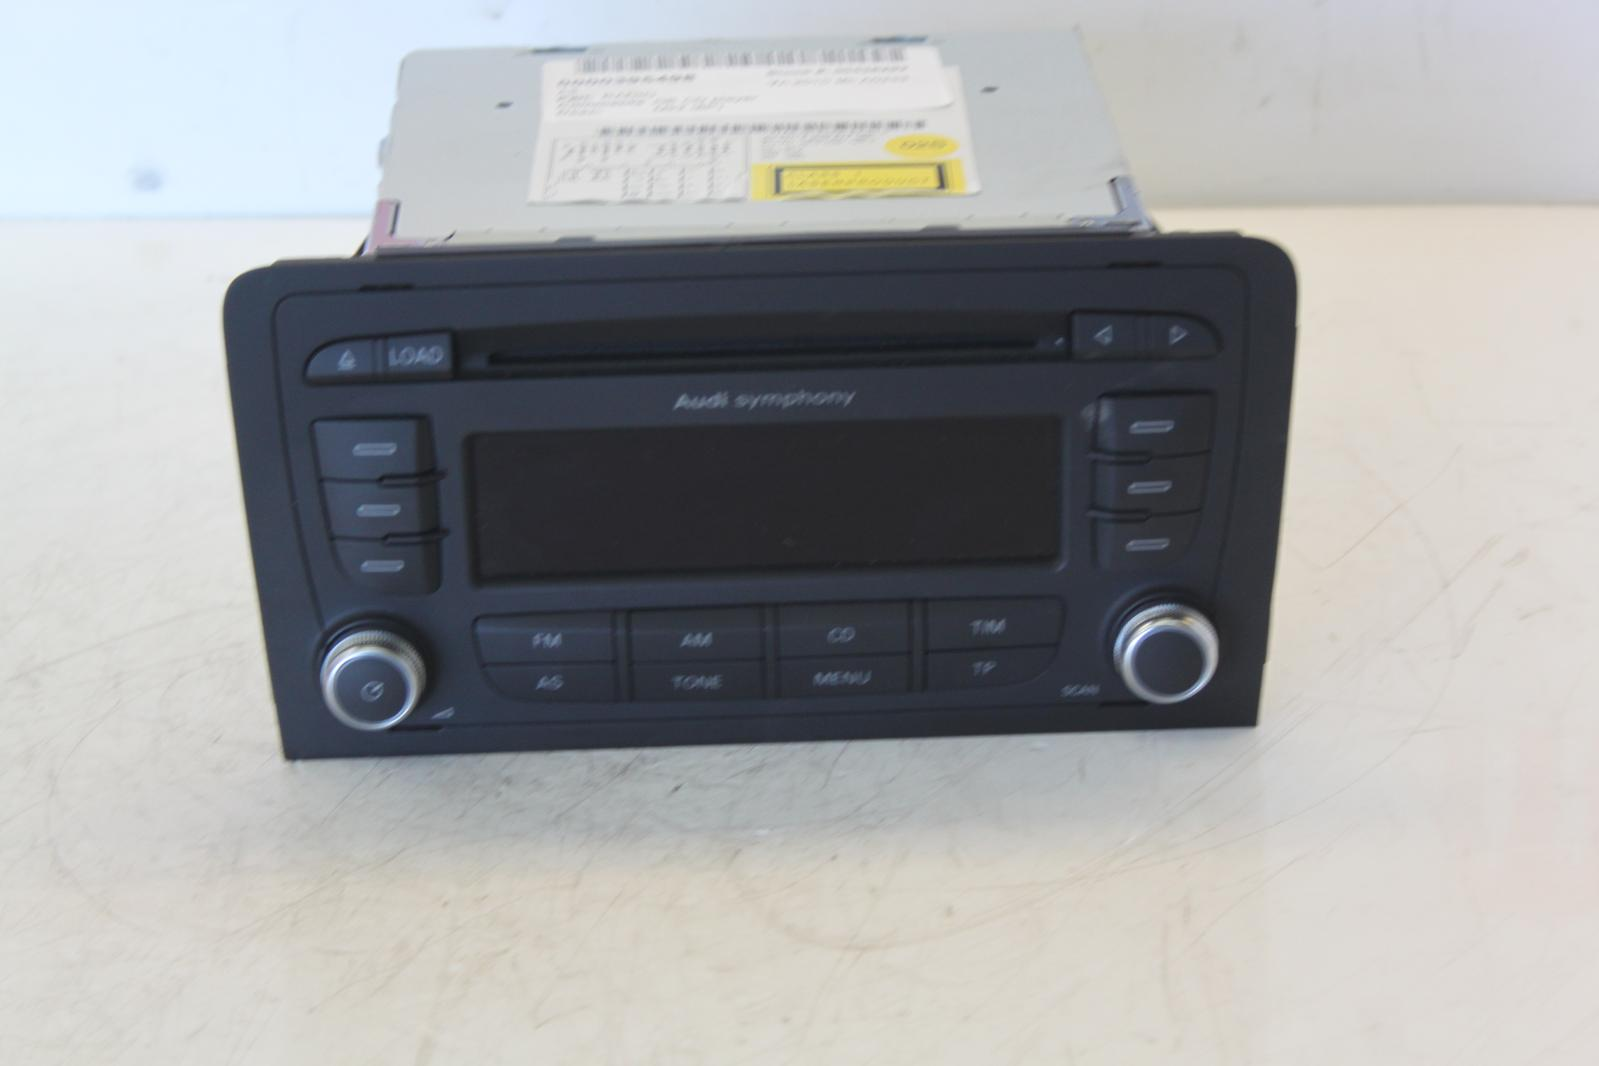 2010 audi a3 8p audi symphony stereo radio cd head unit. Black Bedroom Furniture Sets. Home Design Ideas